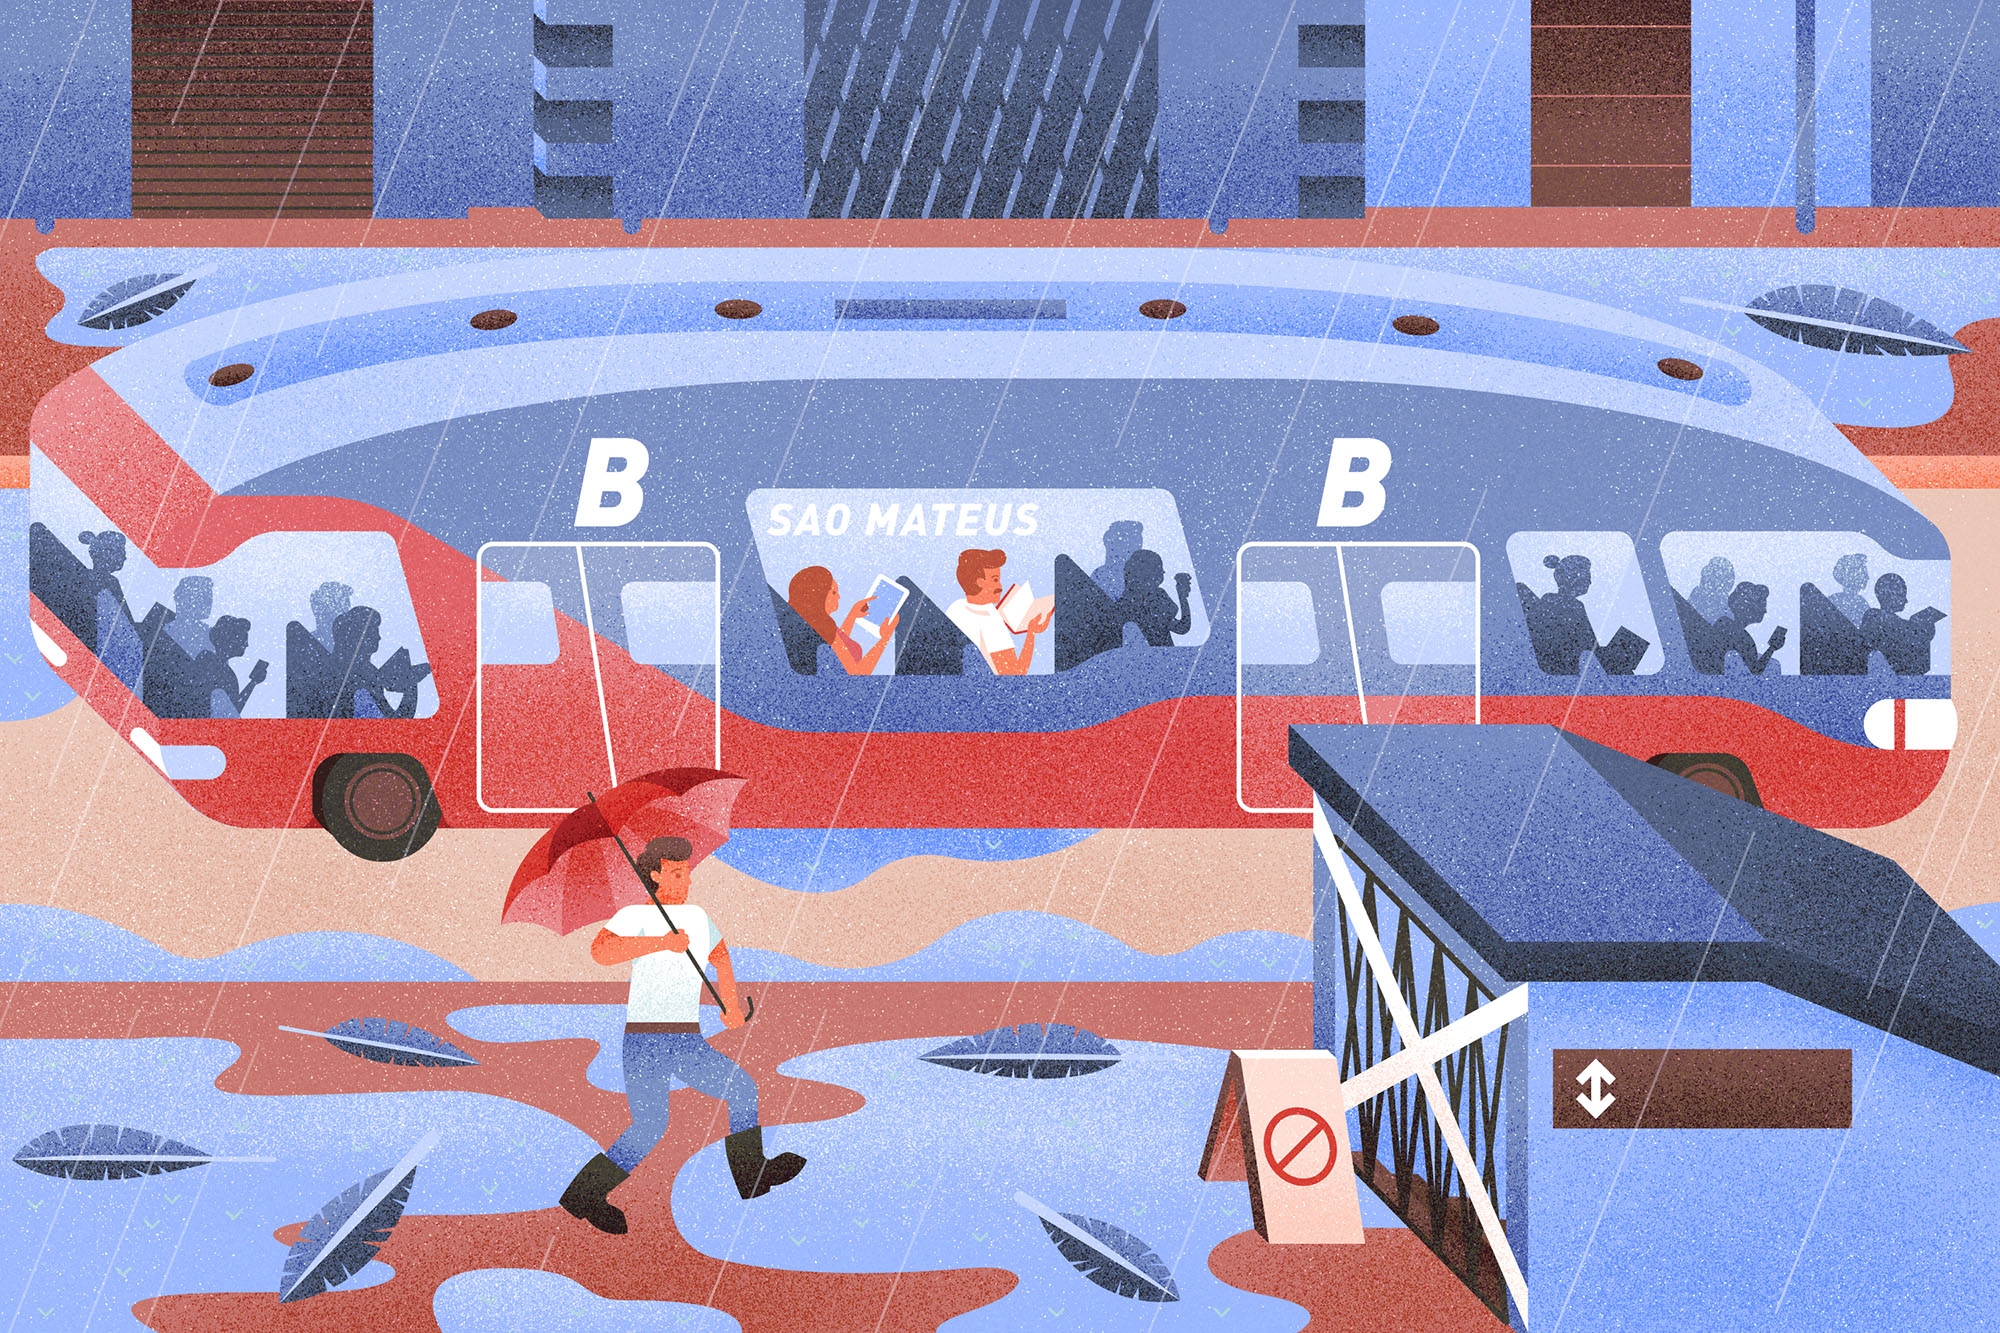 They're flexible too. When a flood hit last year and knocked out half the subways in the city, Jorge didn't miss a day of work because software trains could easily be redeployed to avoid disruptions.